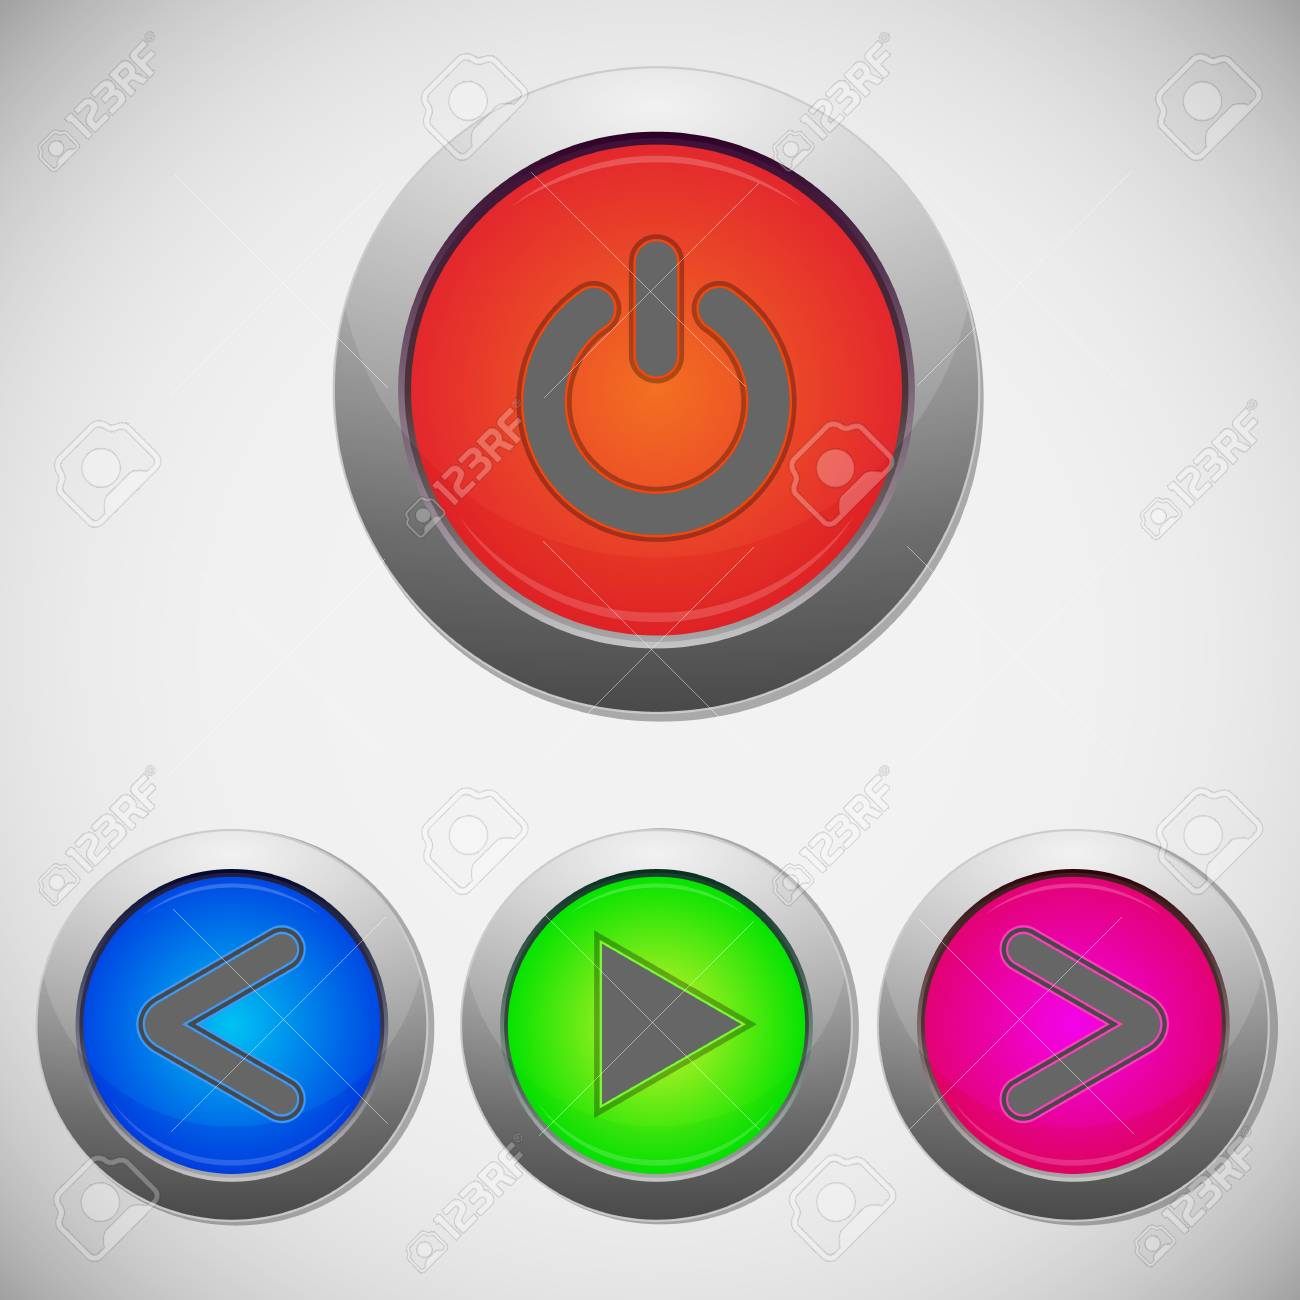 Set of player sign buttons, illustration Stock Vector - 20087663